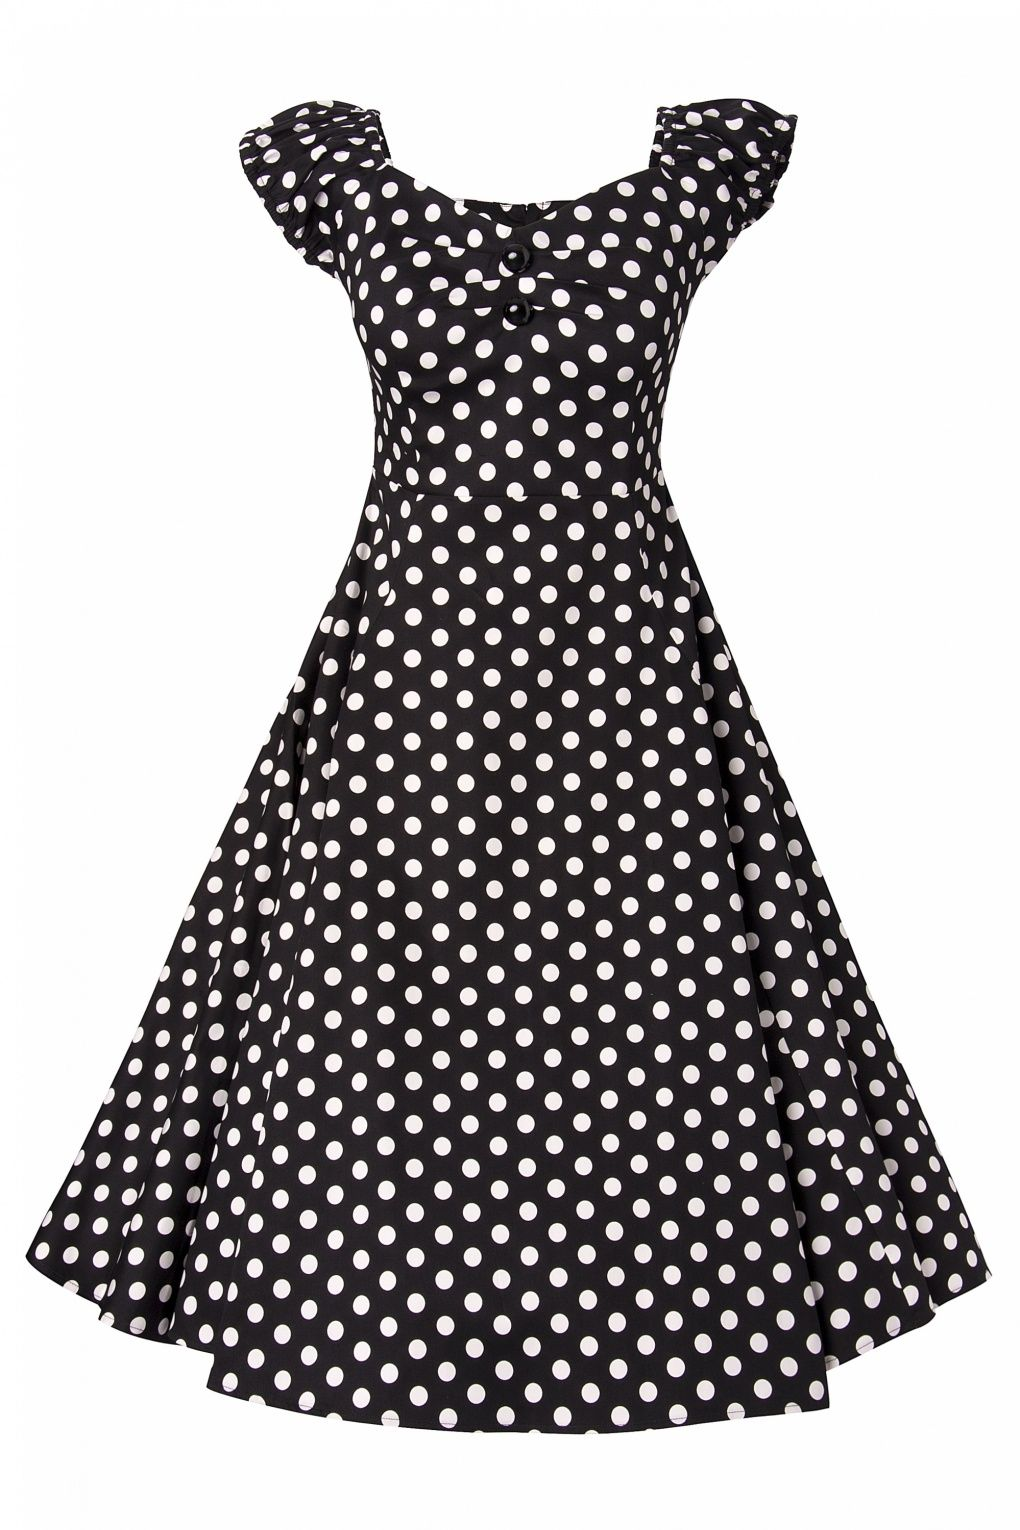 9de9e48b6c346d Collectif Clothing - Collectif Clothing - 50s Dolores Doll dress Black  White polka swing dress - a girl can dream!